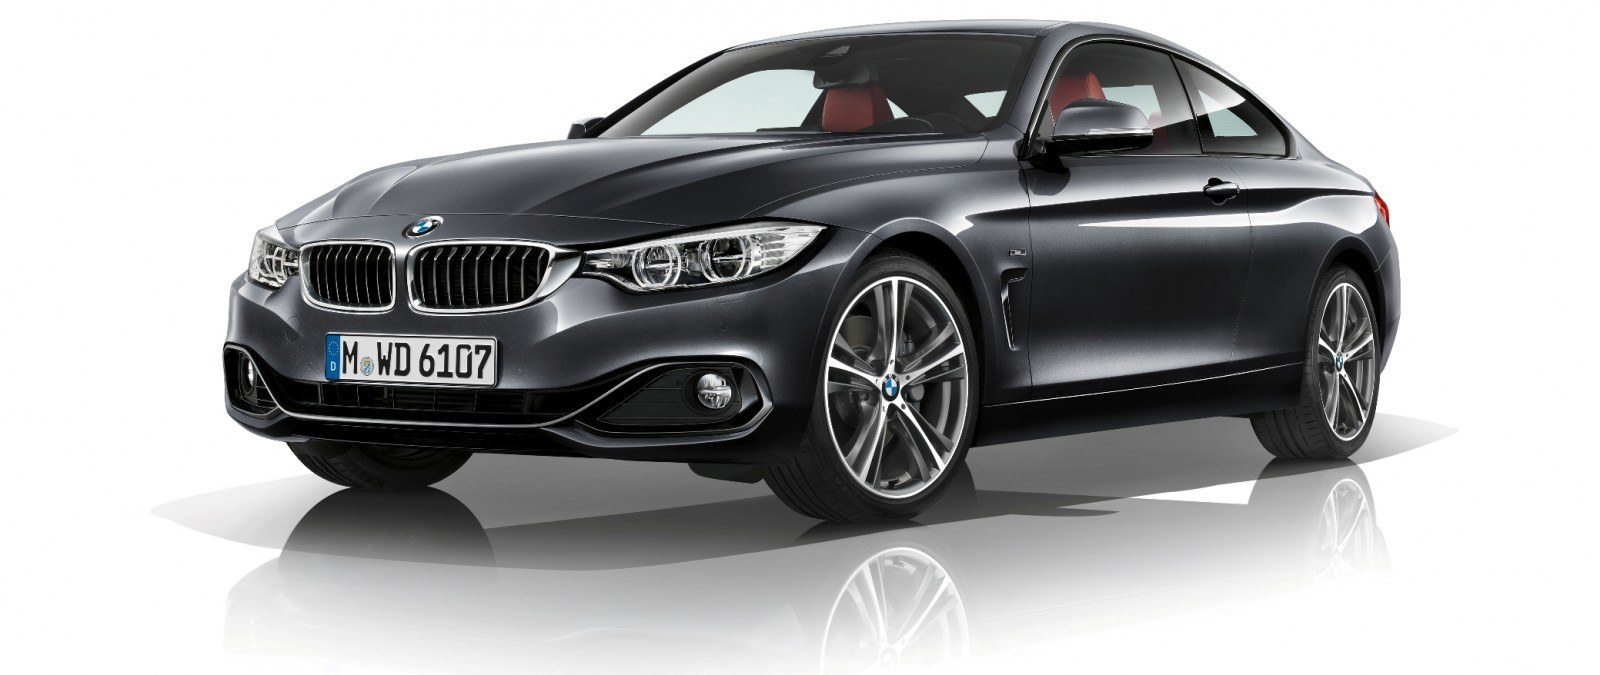 Latest BMW 435i Track Photos Show Beautiful Proportions 64